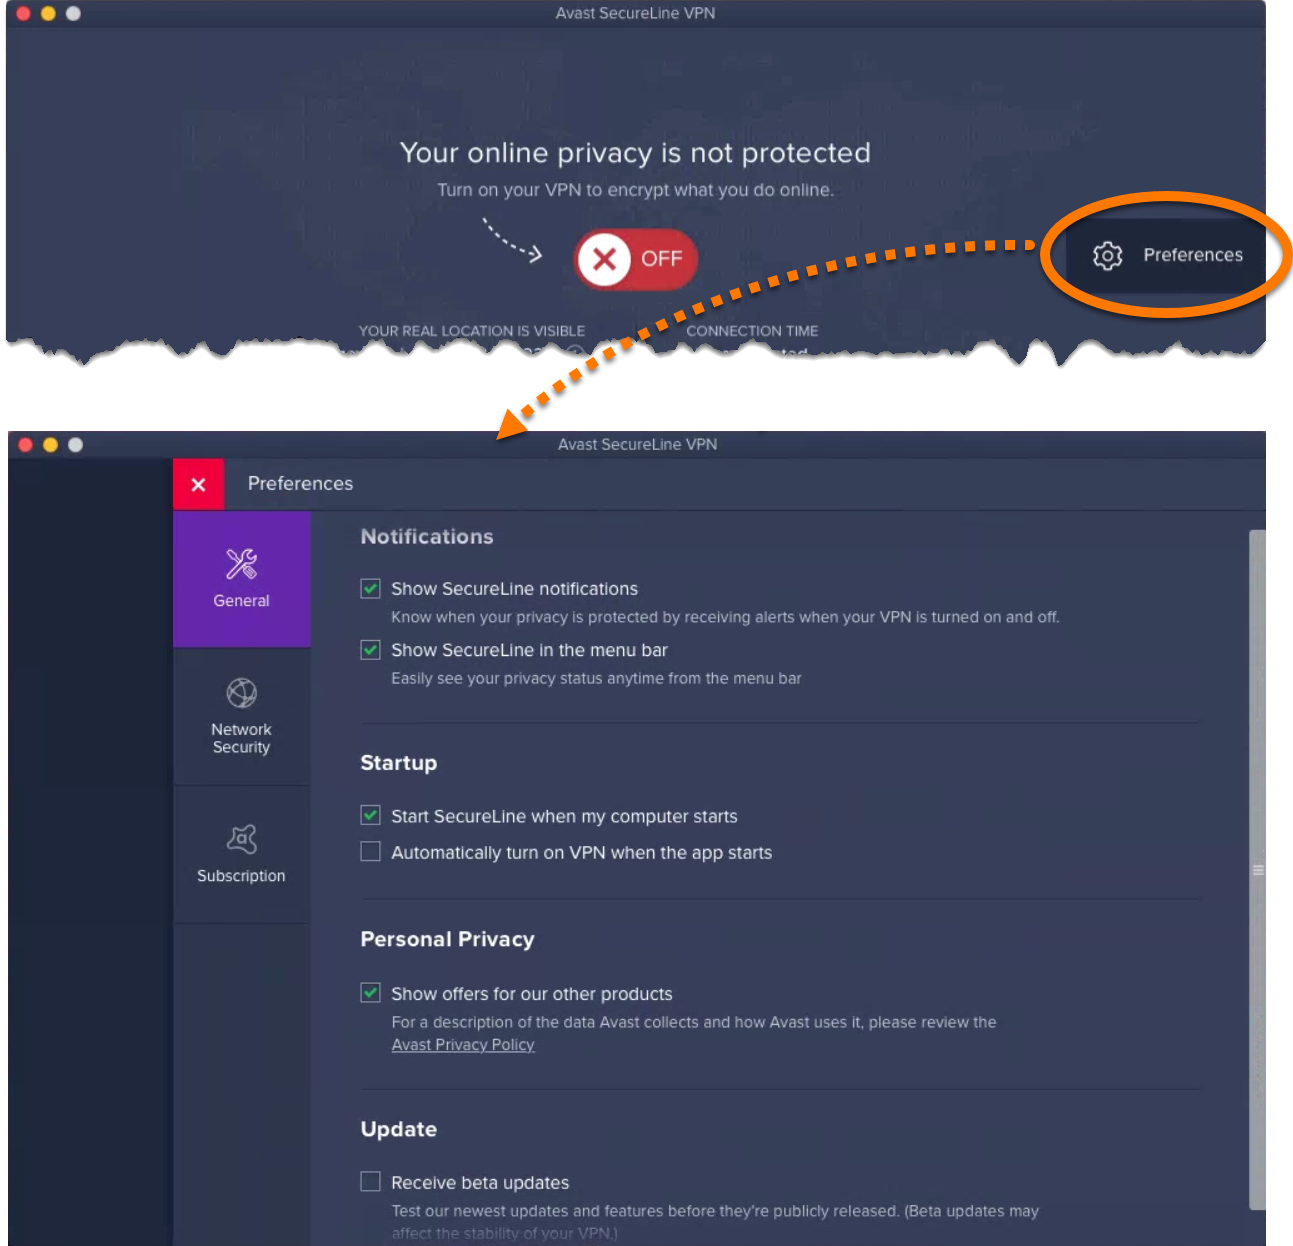 how to delete avast secureline vpn